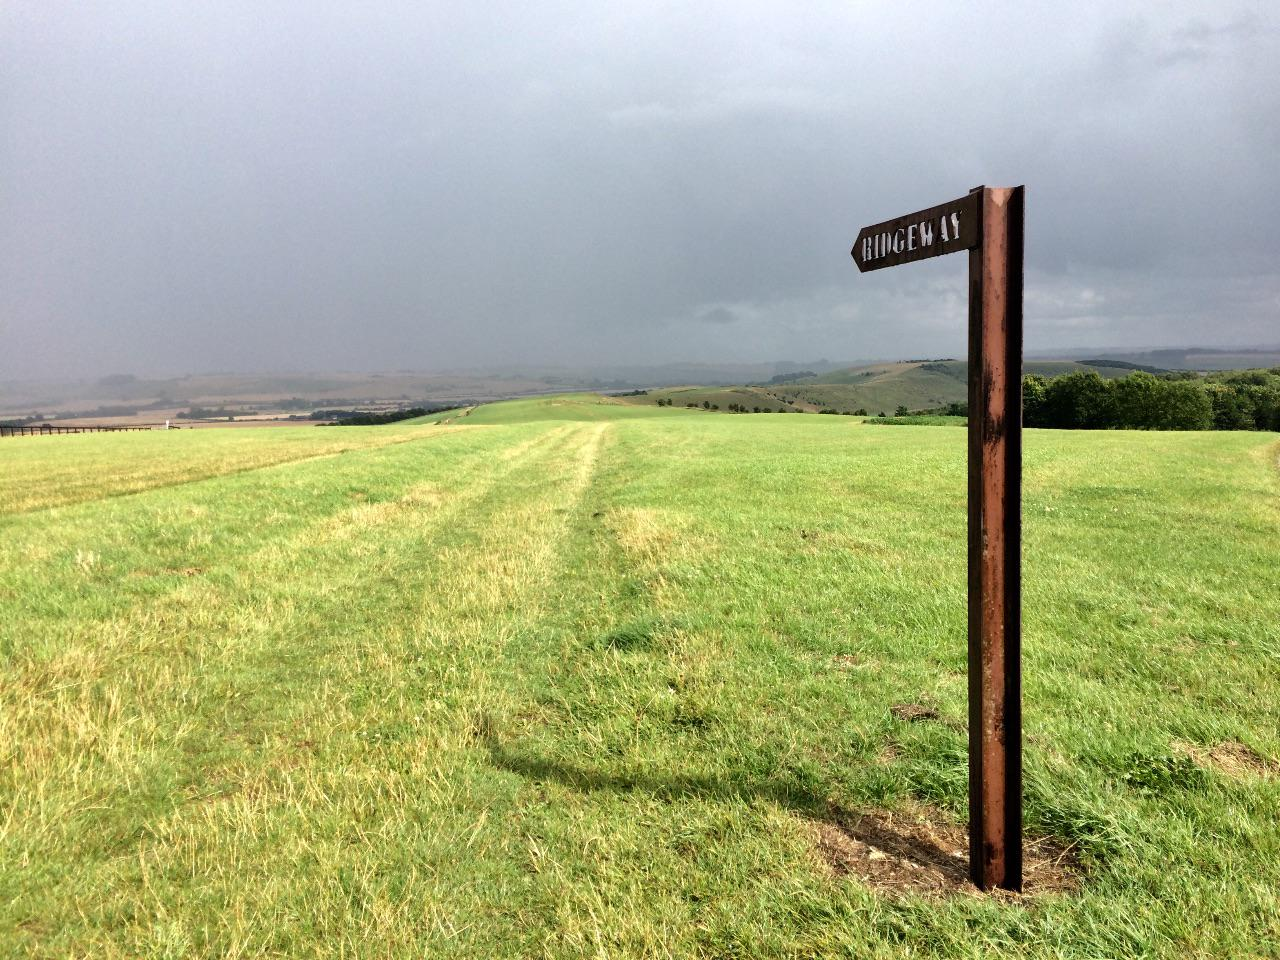 Signpost points along the Ridgeway National Trail